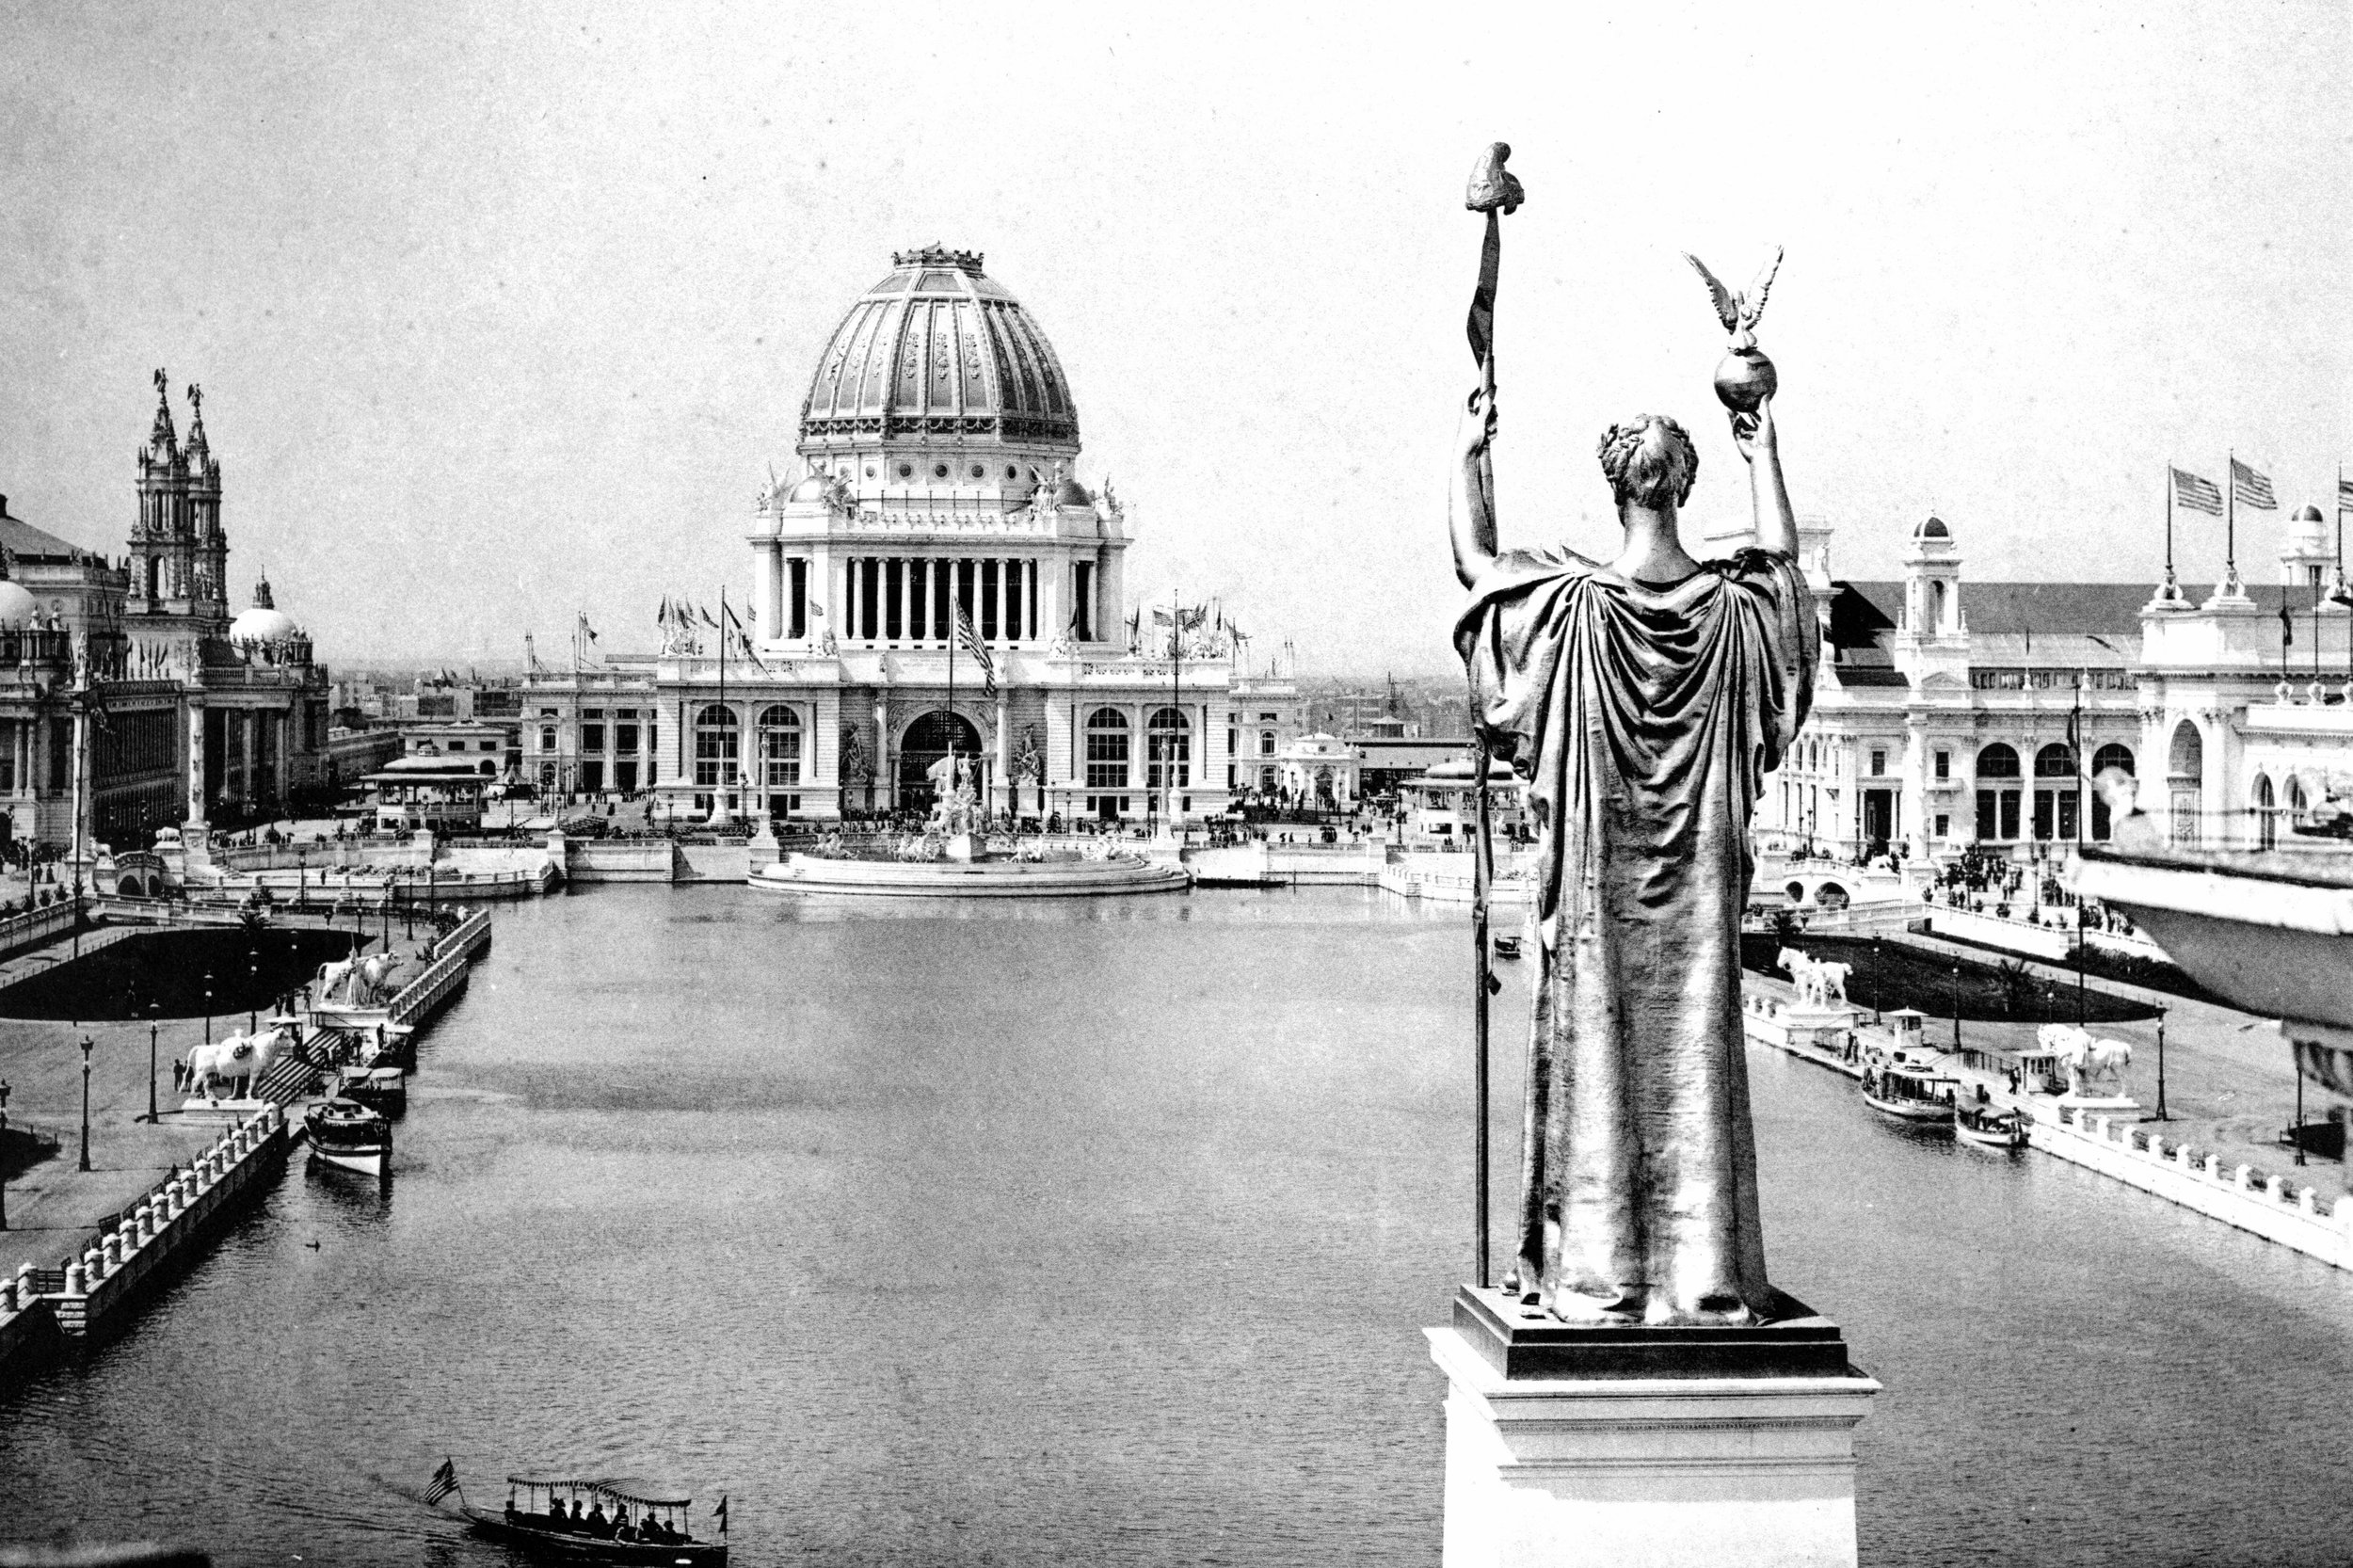 Charles Arnold, Court of Honor at the World's Columbian Exposition, 1893